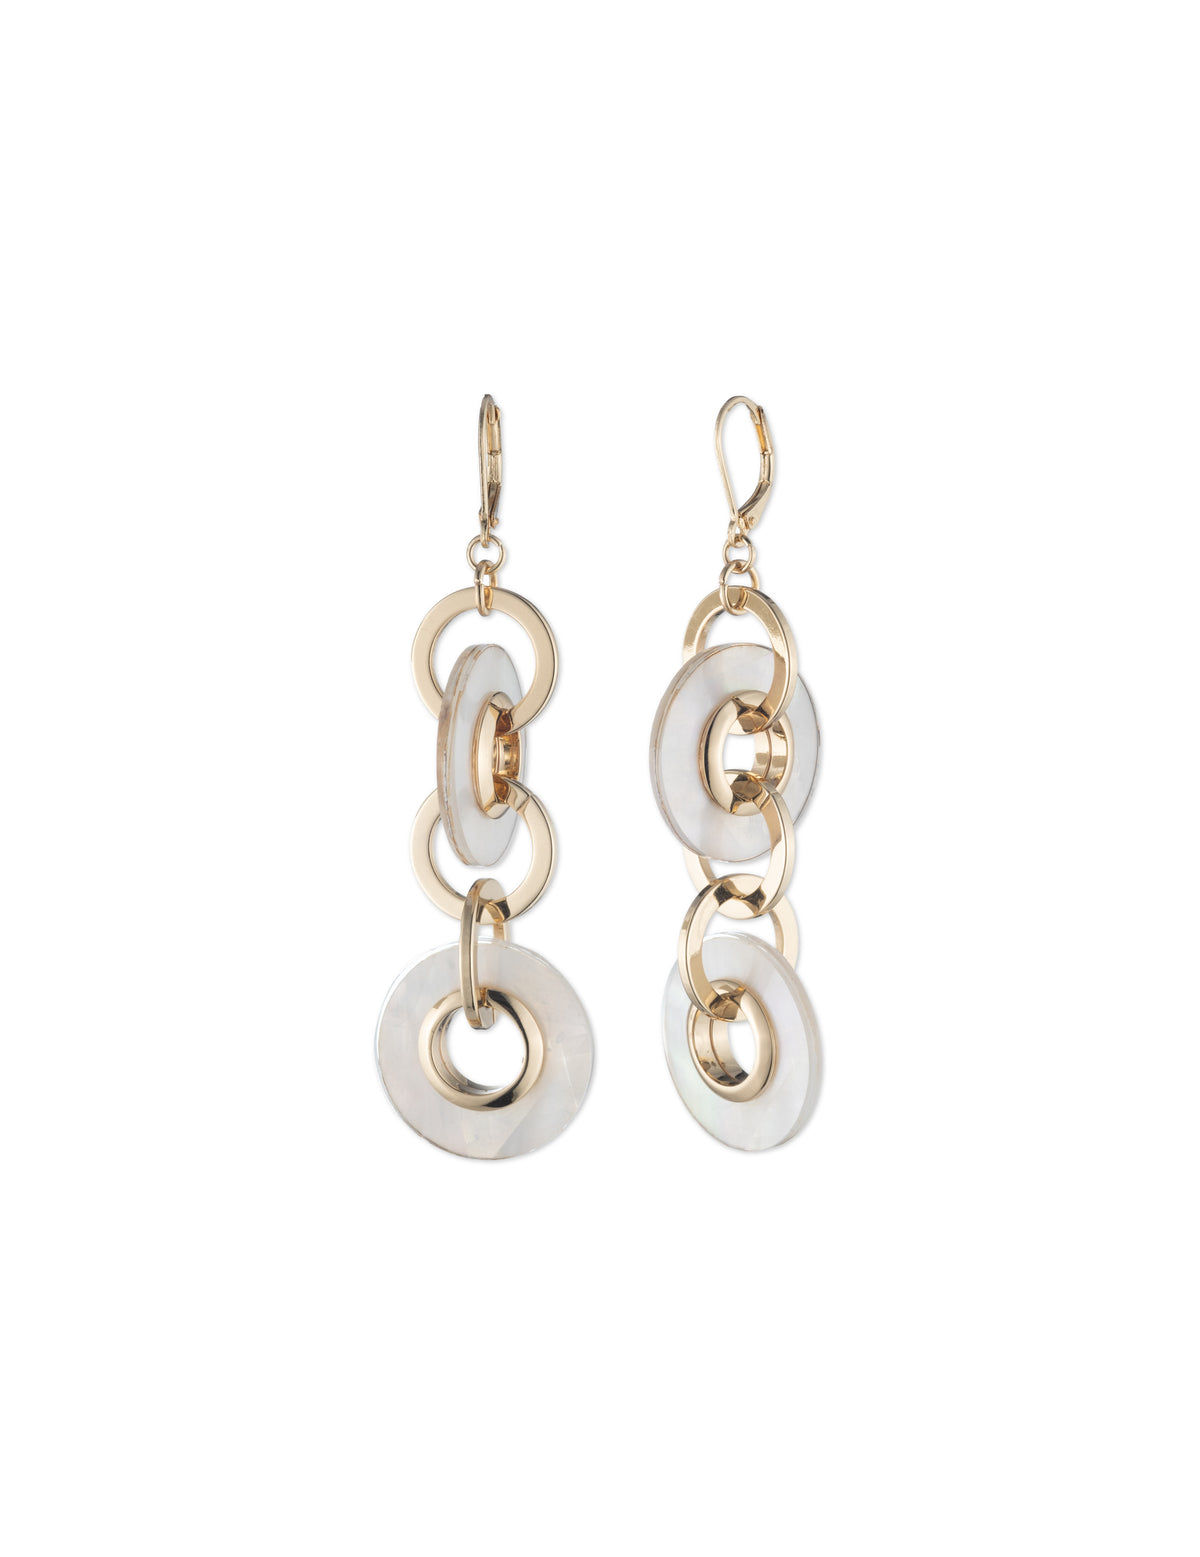 Drama Interlock Ring Earrings